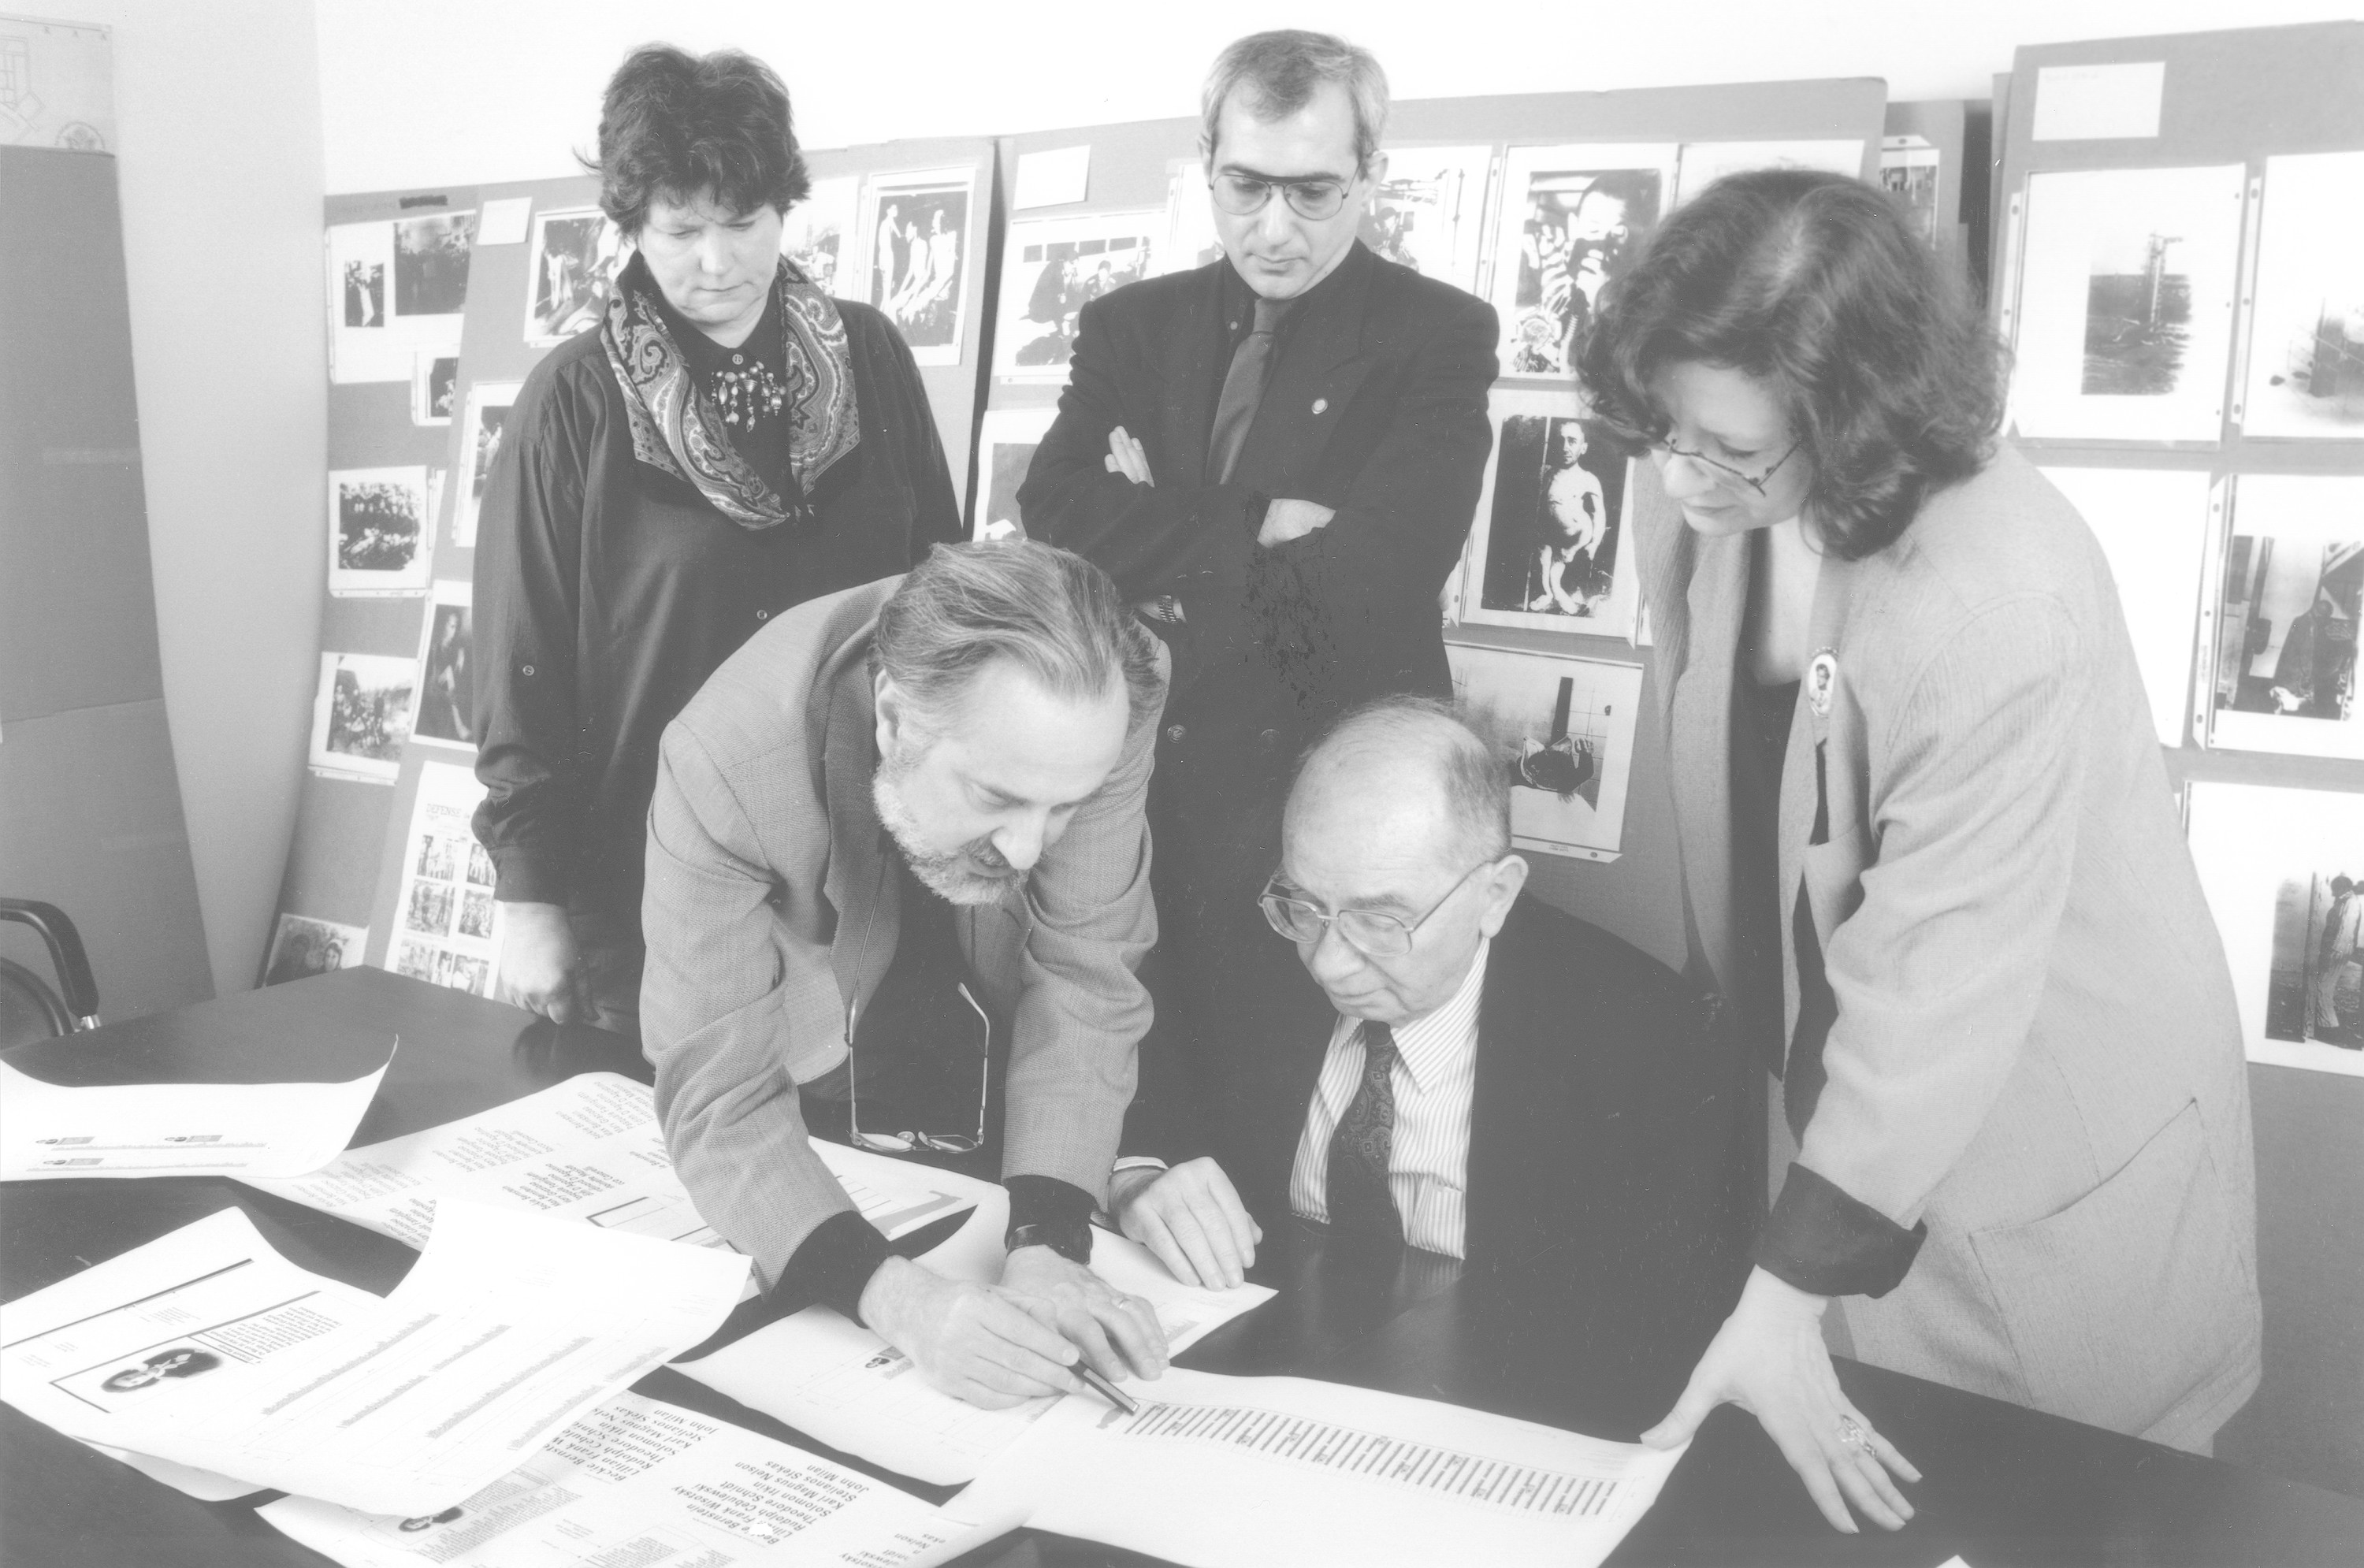 Members of the design team for the permanent exhibition of the U.S. Holocaust Memorial Museum meet with museum director Shaike Weinberg.  Pictured clockwise from the top (center) are: Radu Ioanid, Raye Farr, Shaike Weinberg, Ralph Appelbaum and Ann Farrington.